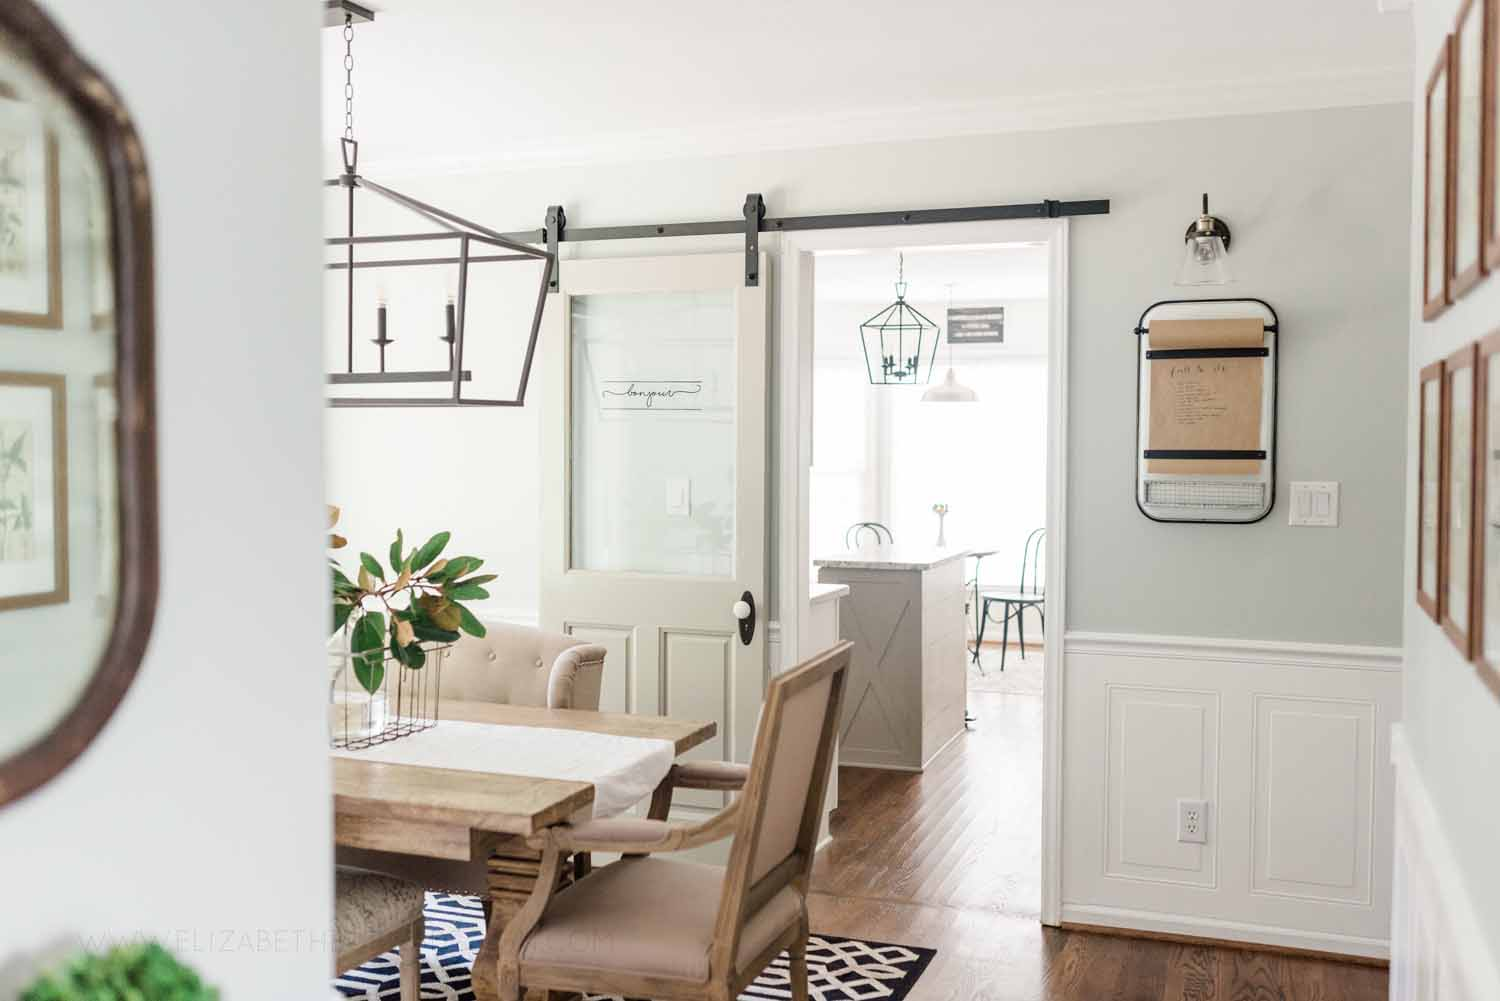 Elizabeth Burns Design Raleigh Interior Designer 1990s house remodel before and after Sherwin Williams Silver Strand SW 7057 Farmhouse Dining Room Barn Door Budget Renovation (4).jpg